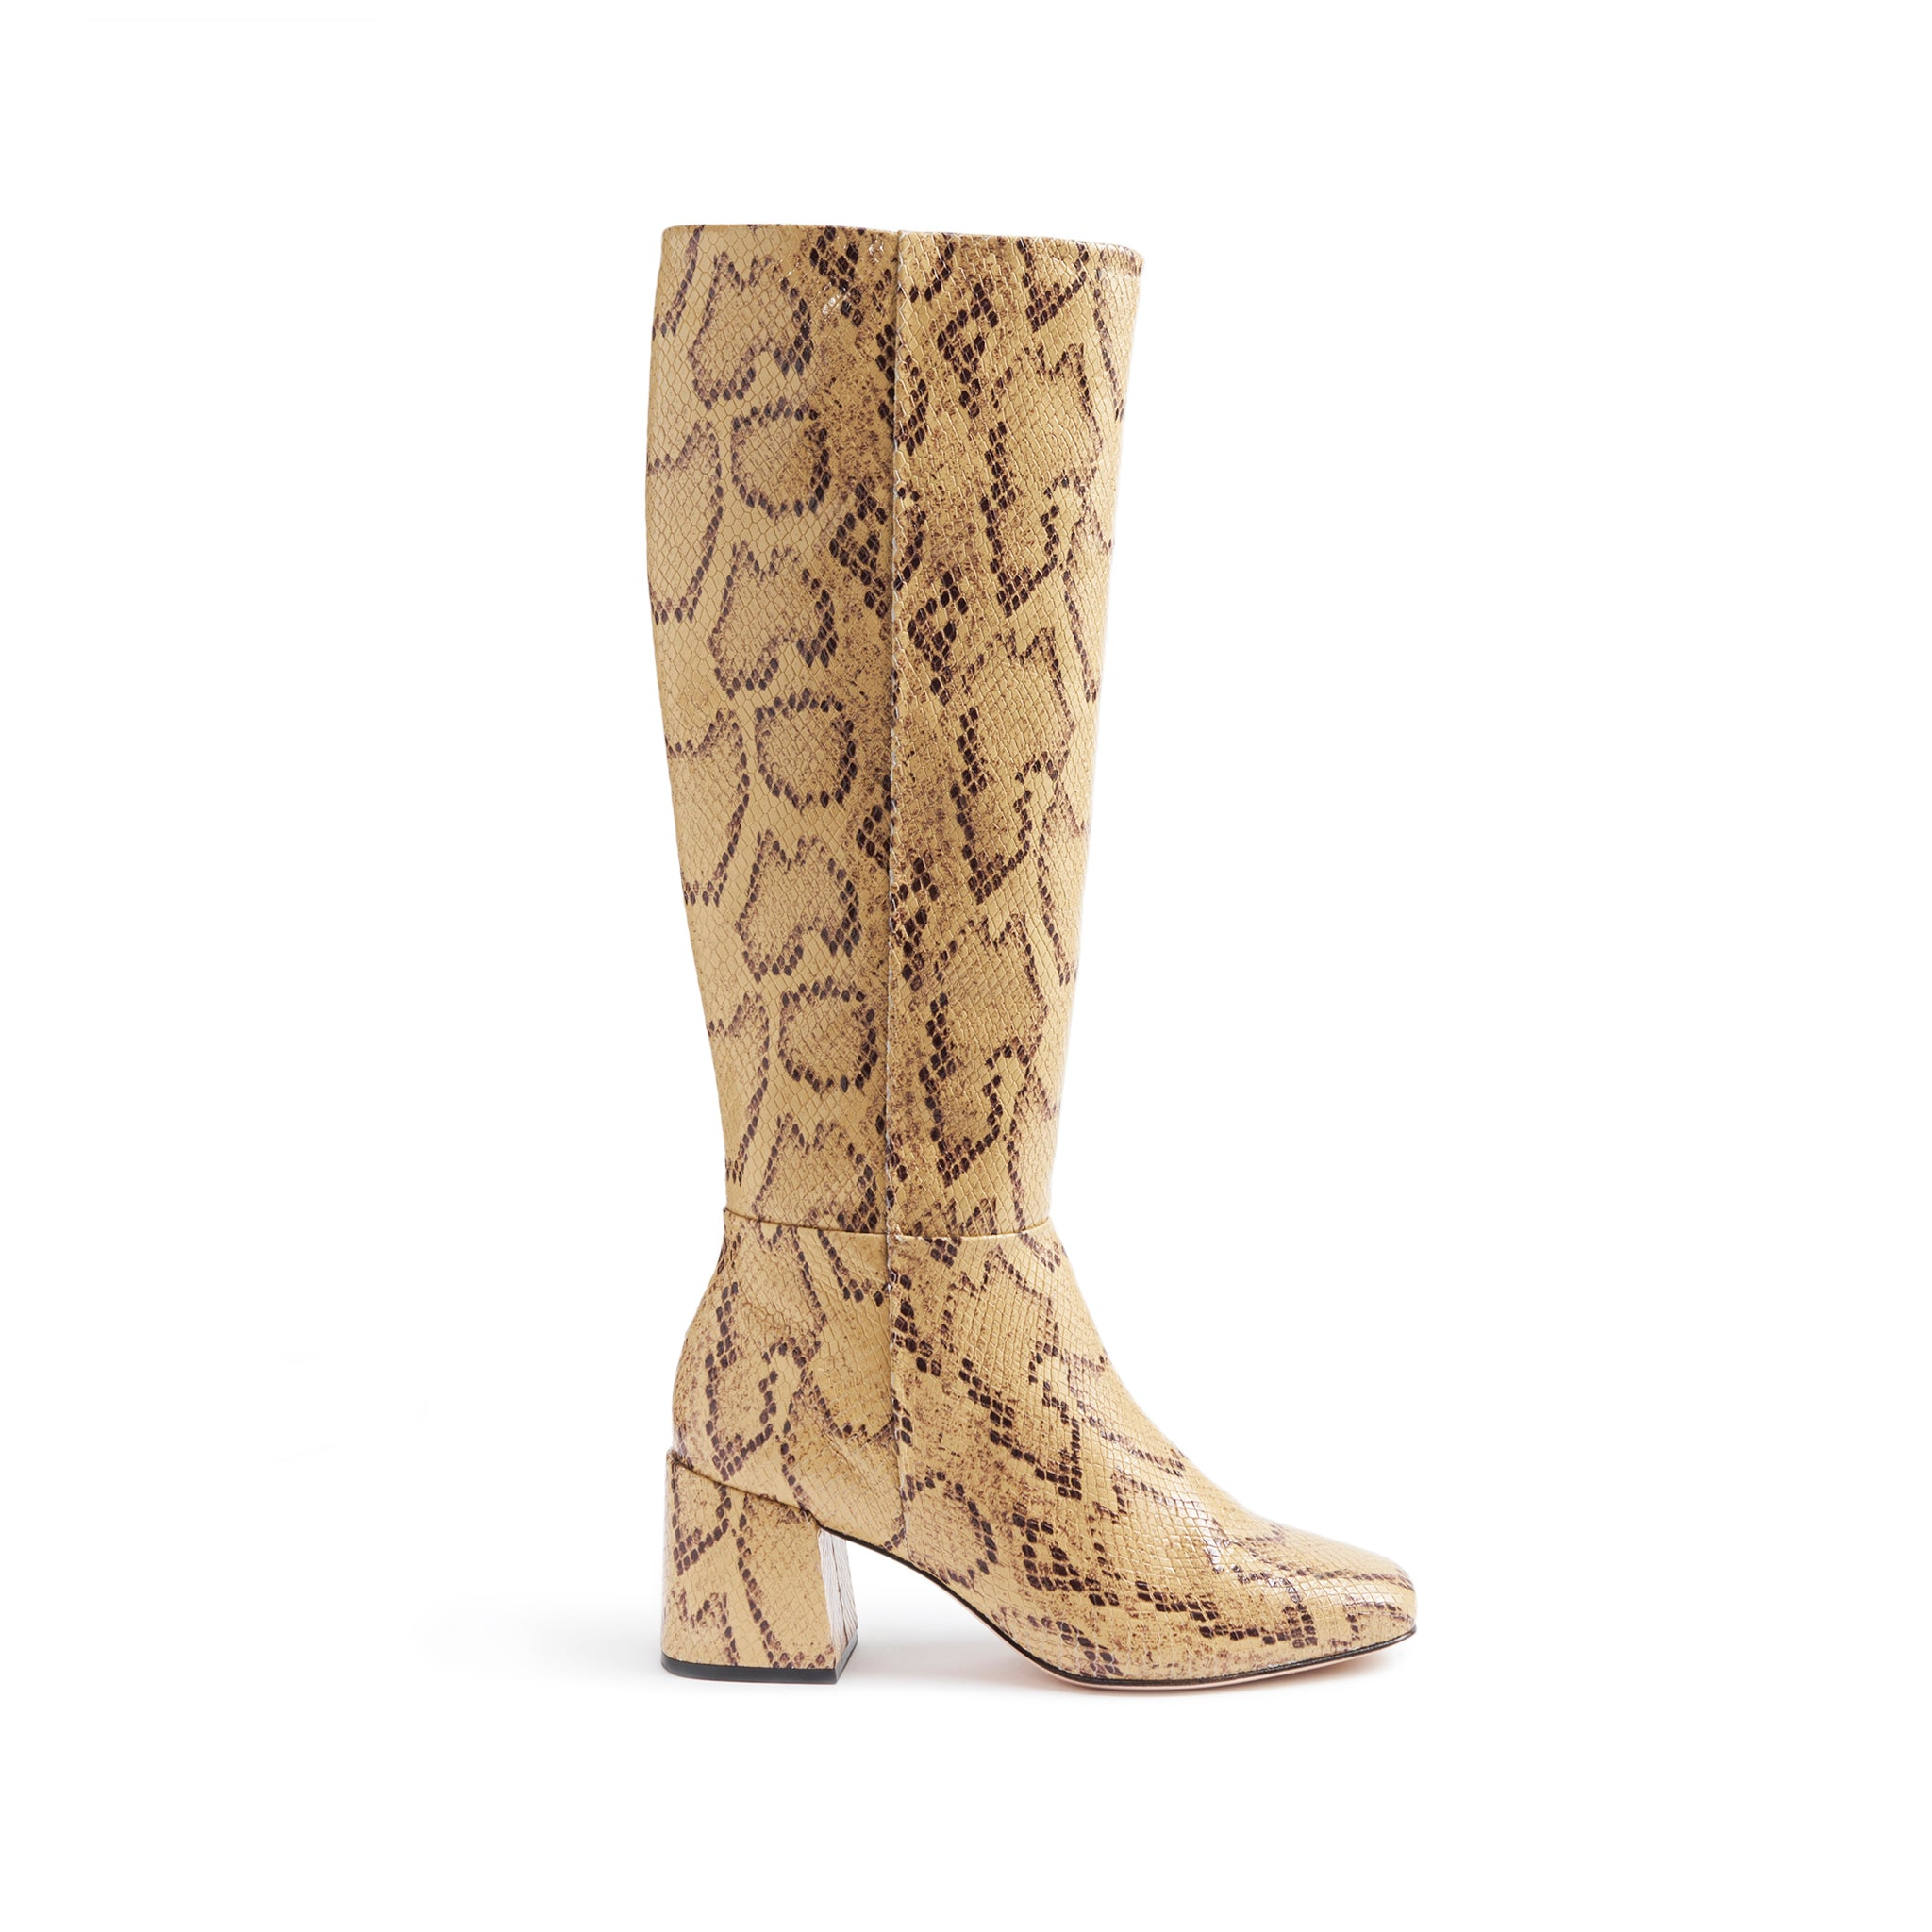 Beliana Boots Bisque Snake Snake Embossed Leather